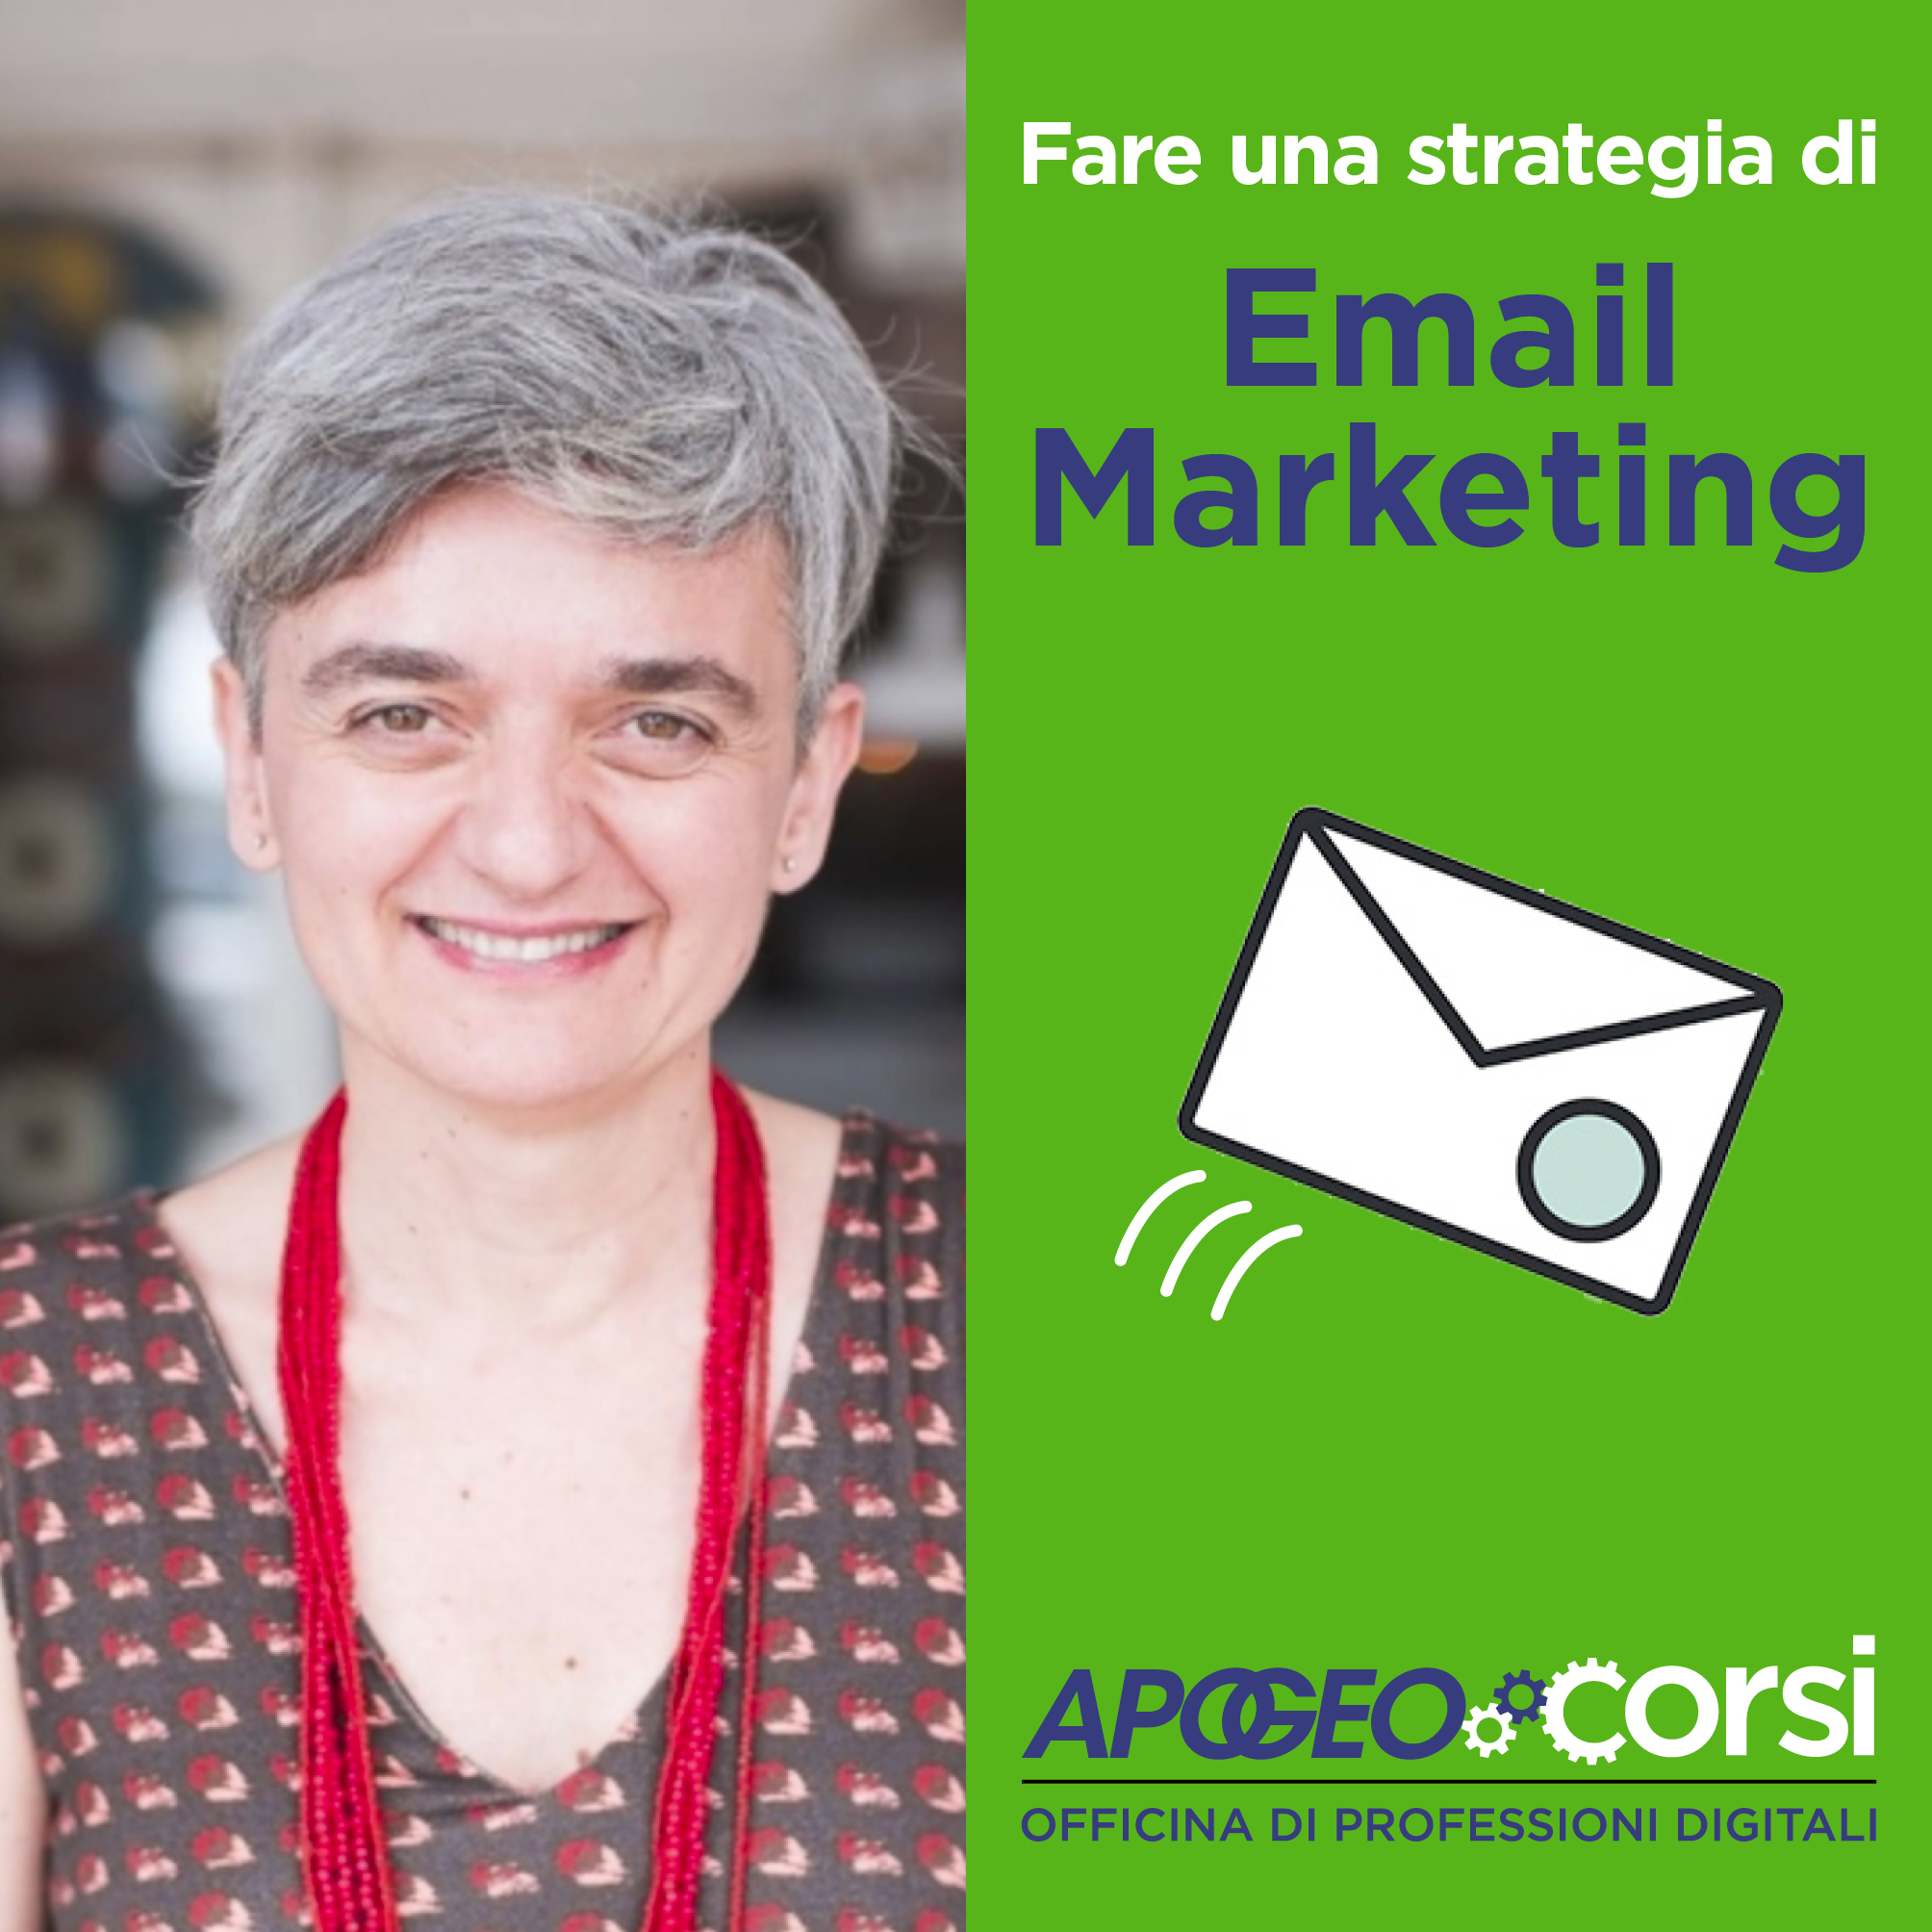 Fare_una_strategia_di_Email_Marketing-home